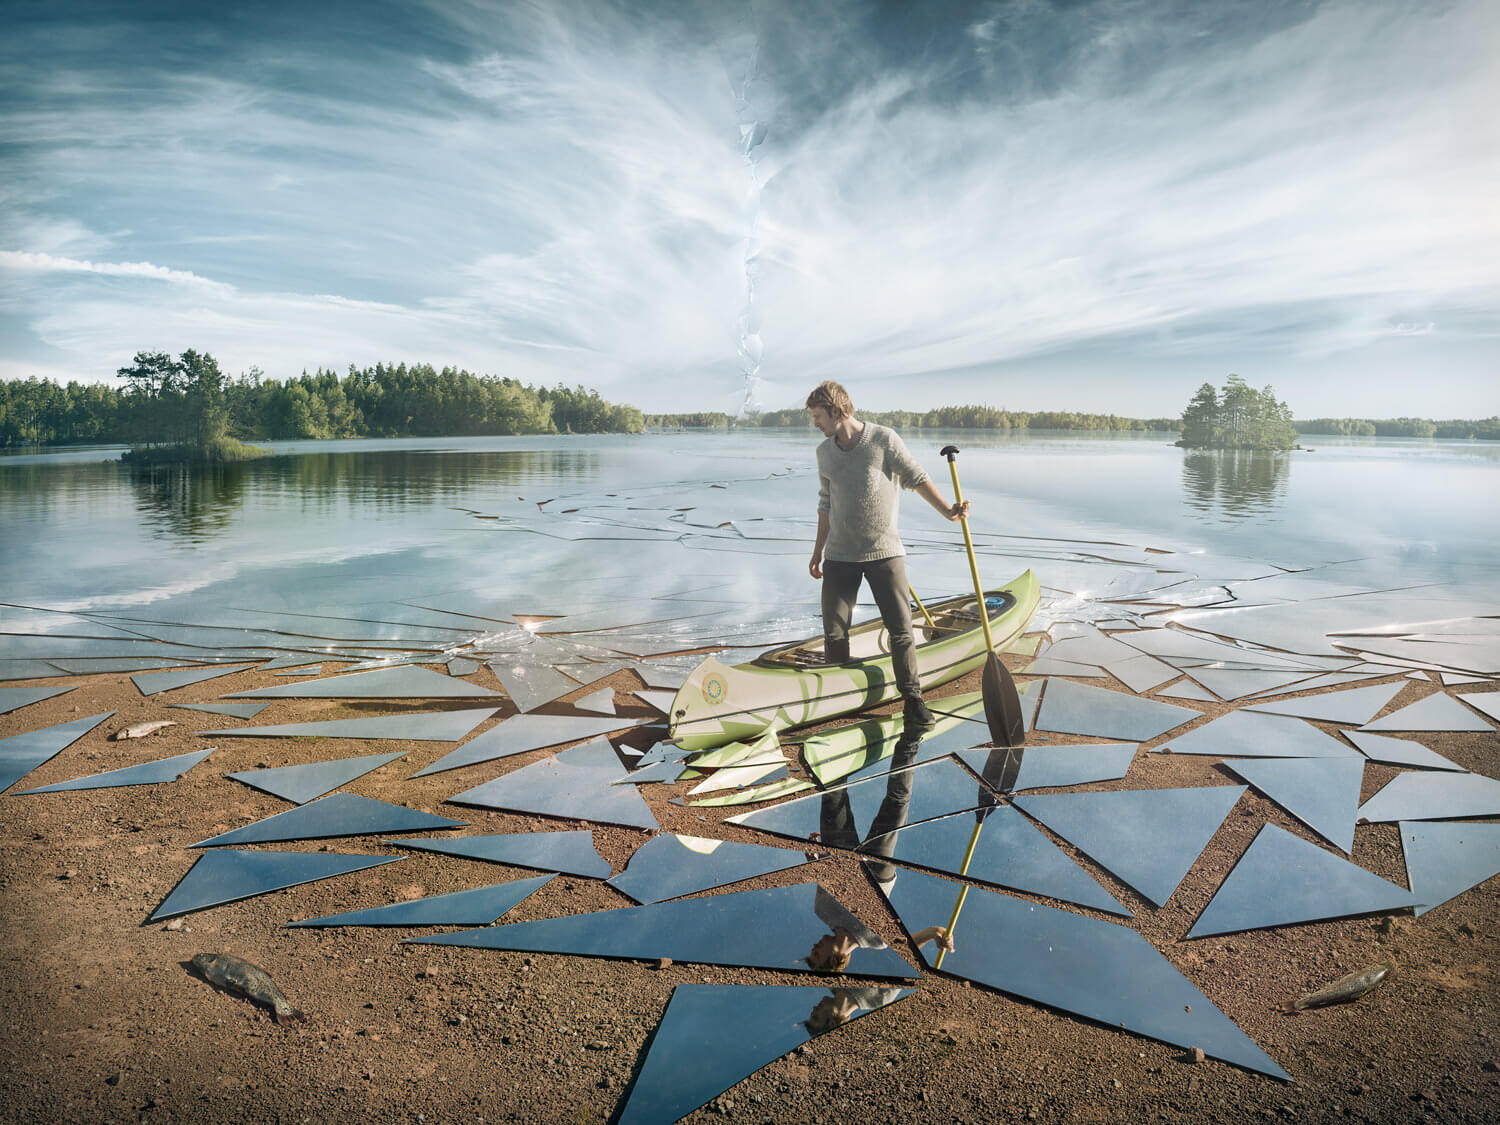 Mind bending Erik Johansson photos 18 (1)